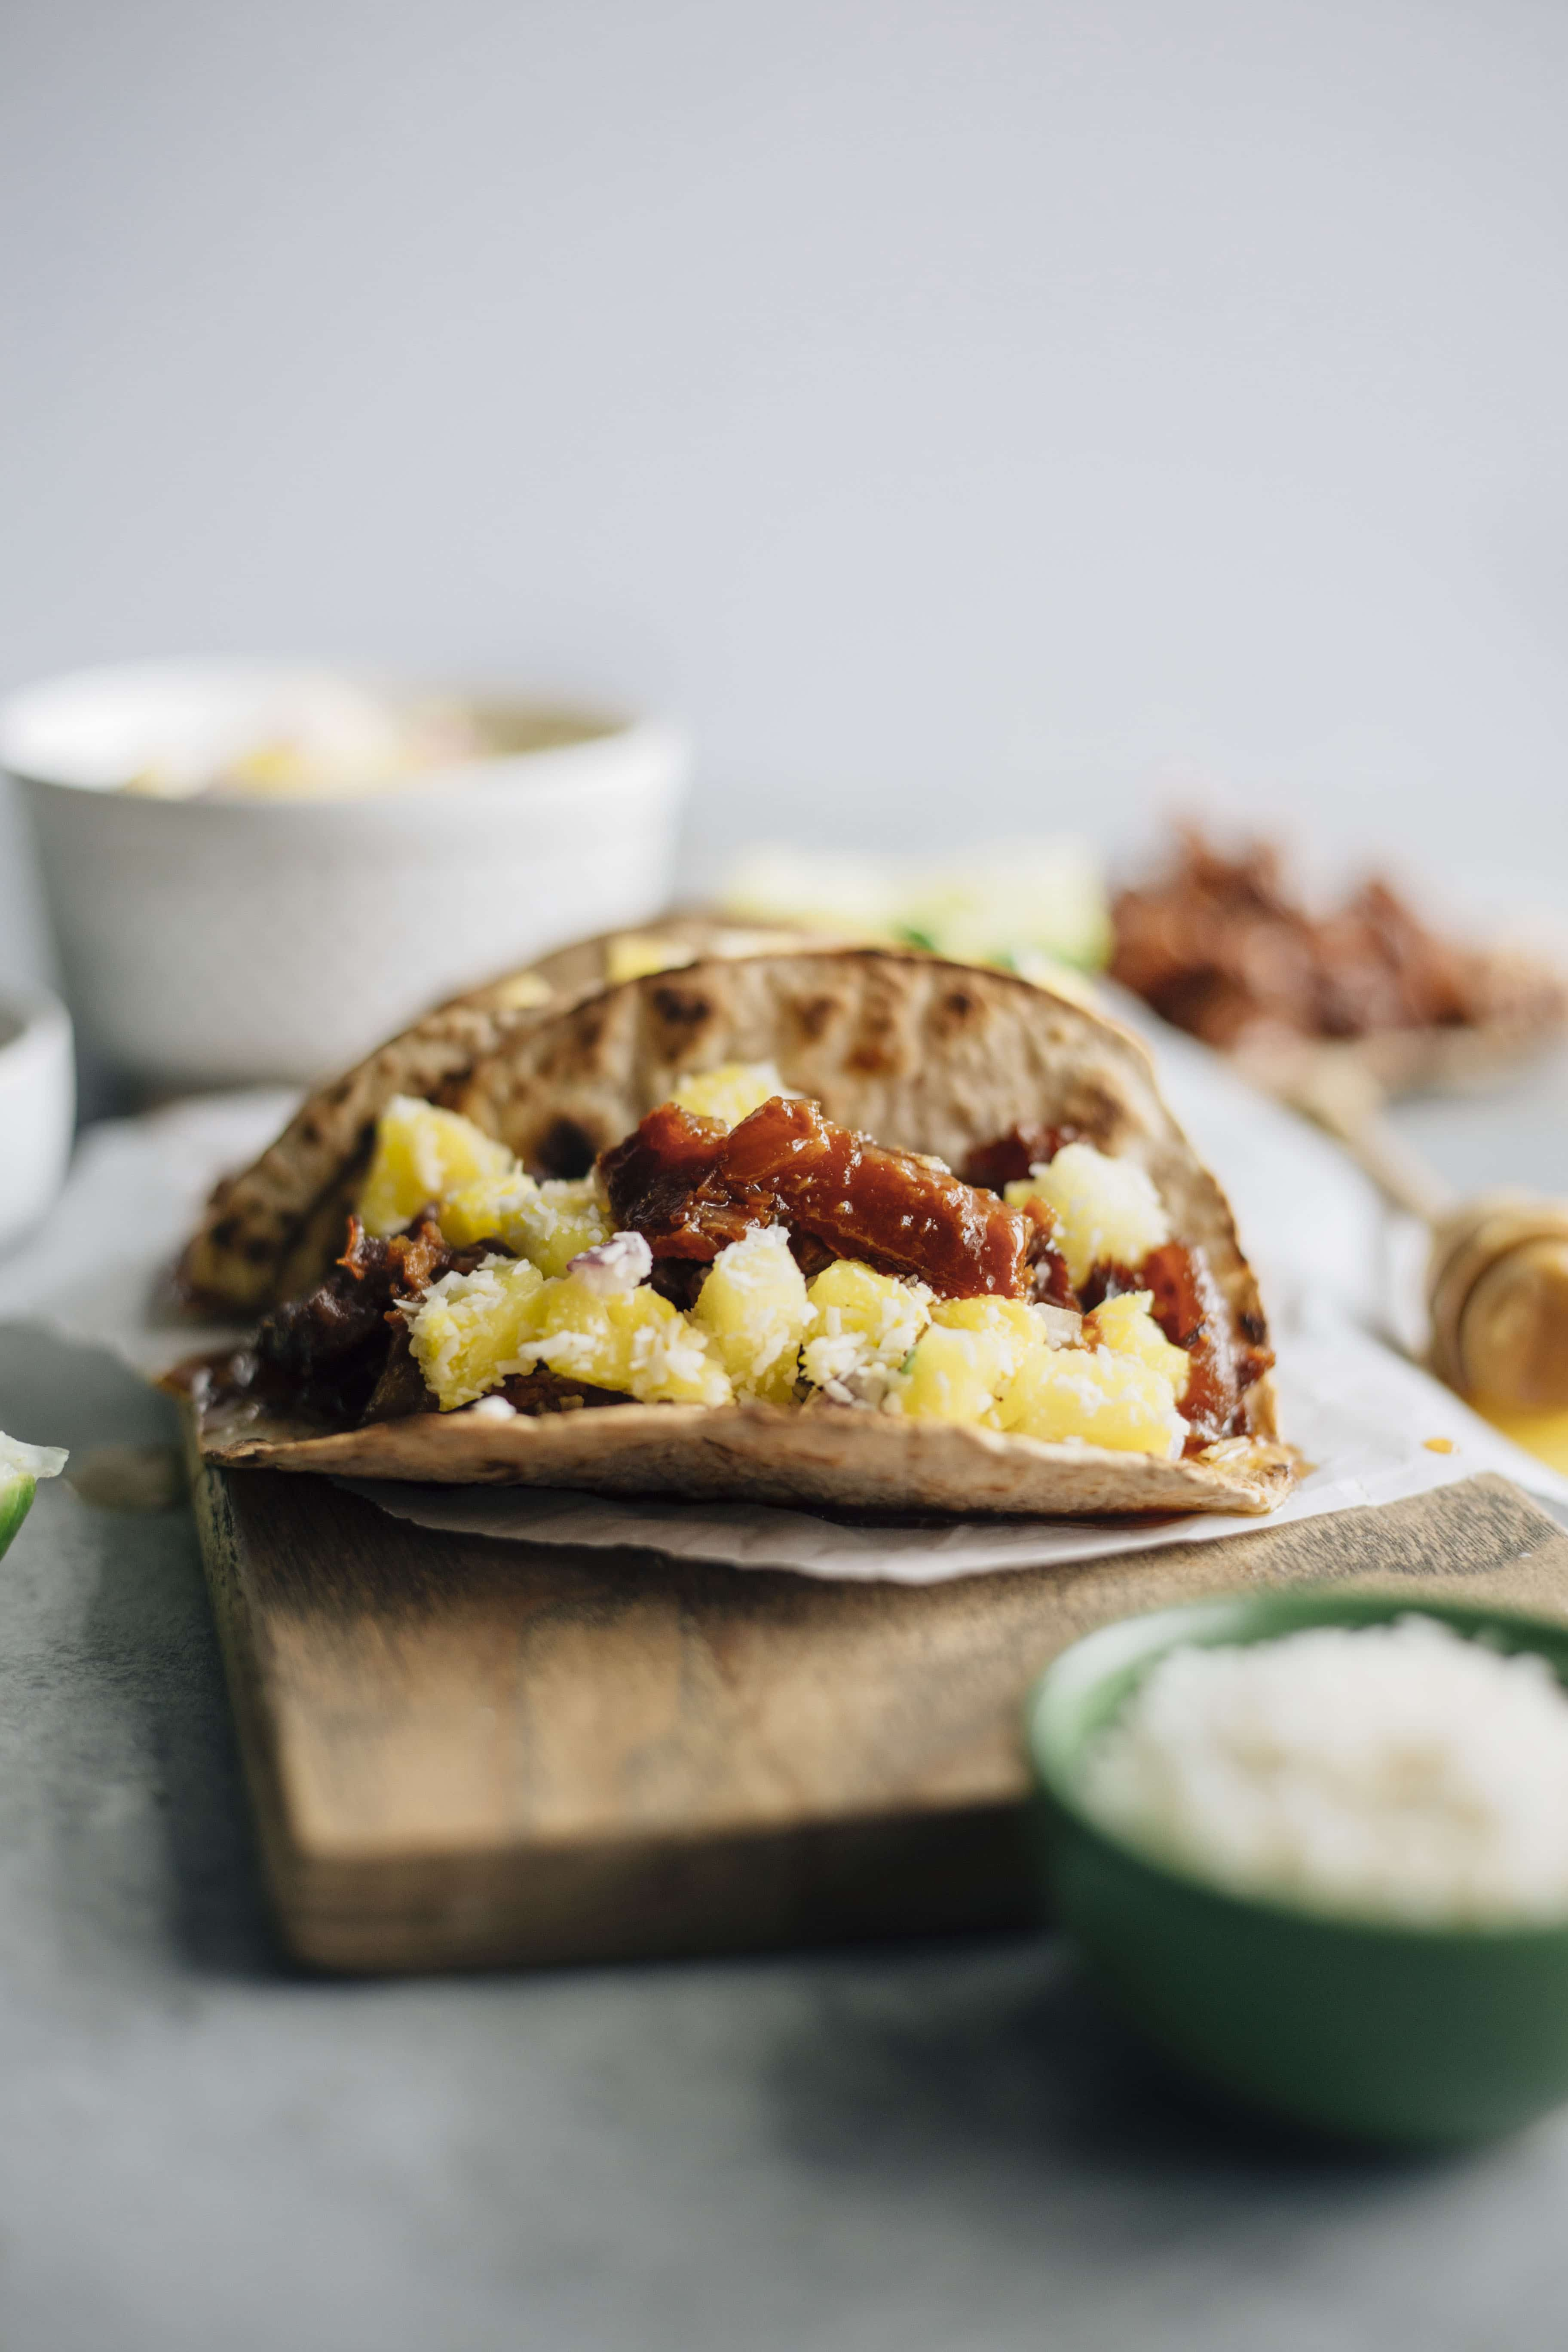 Honey Ginger Pork Tacos   Made in the slow cooker, marinaded in honey and ginger and topped with a simple pineapple salsa!